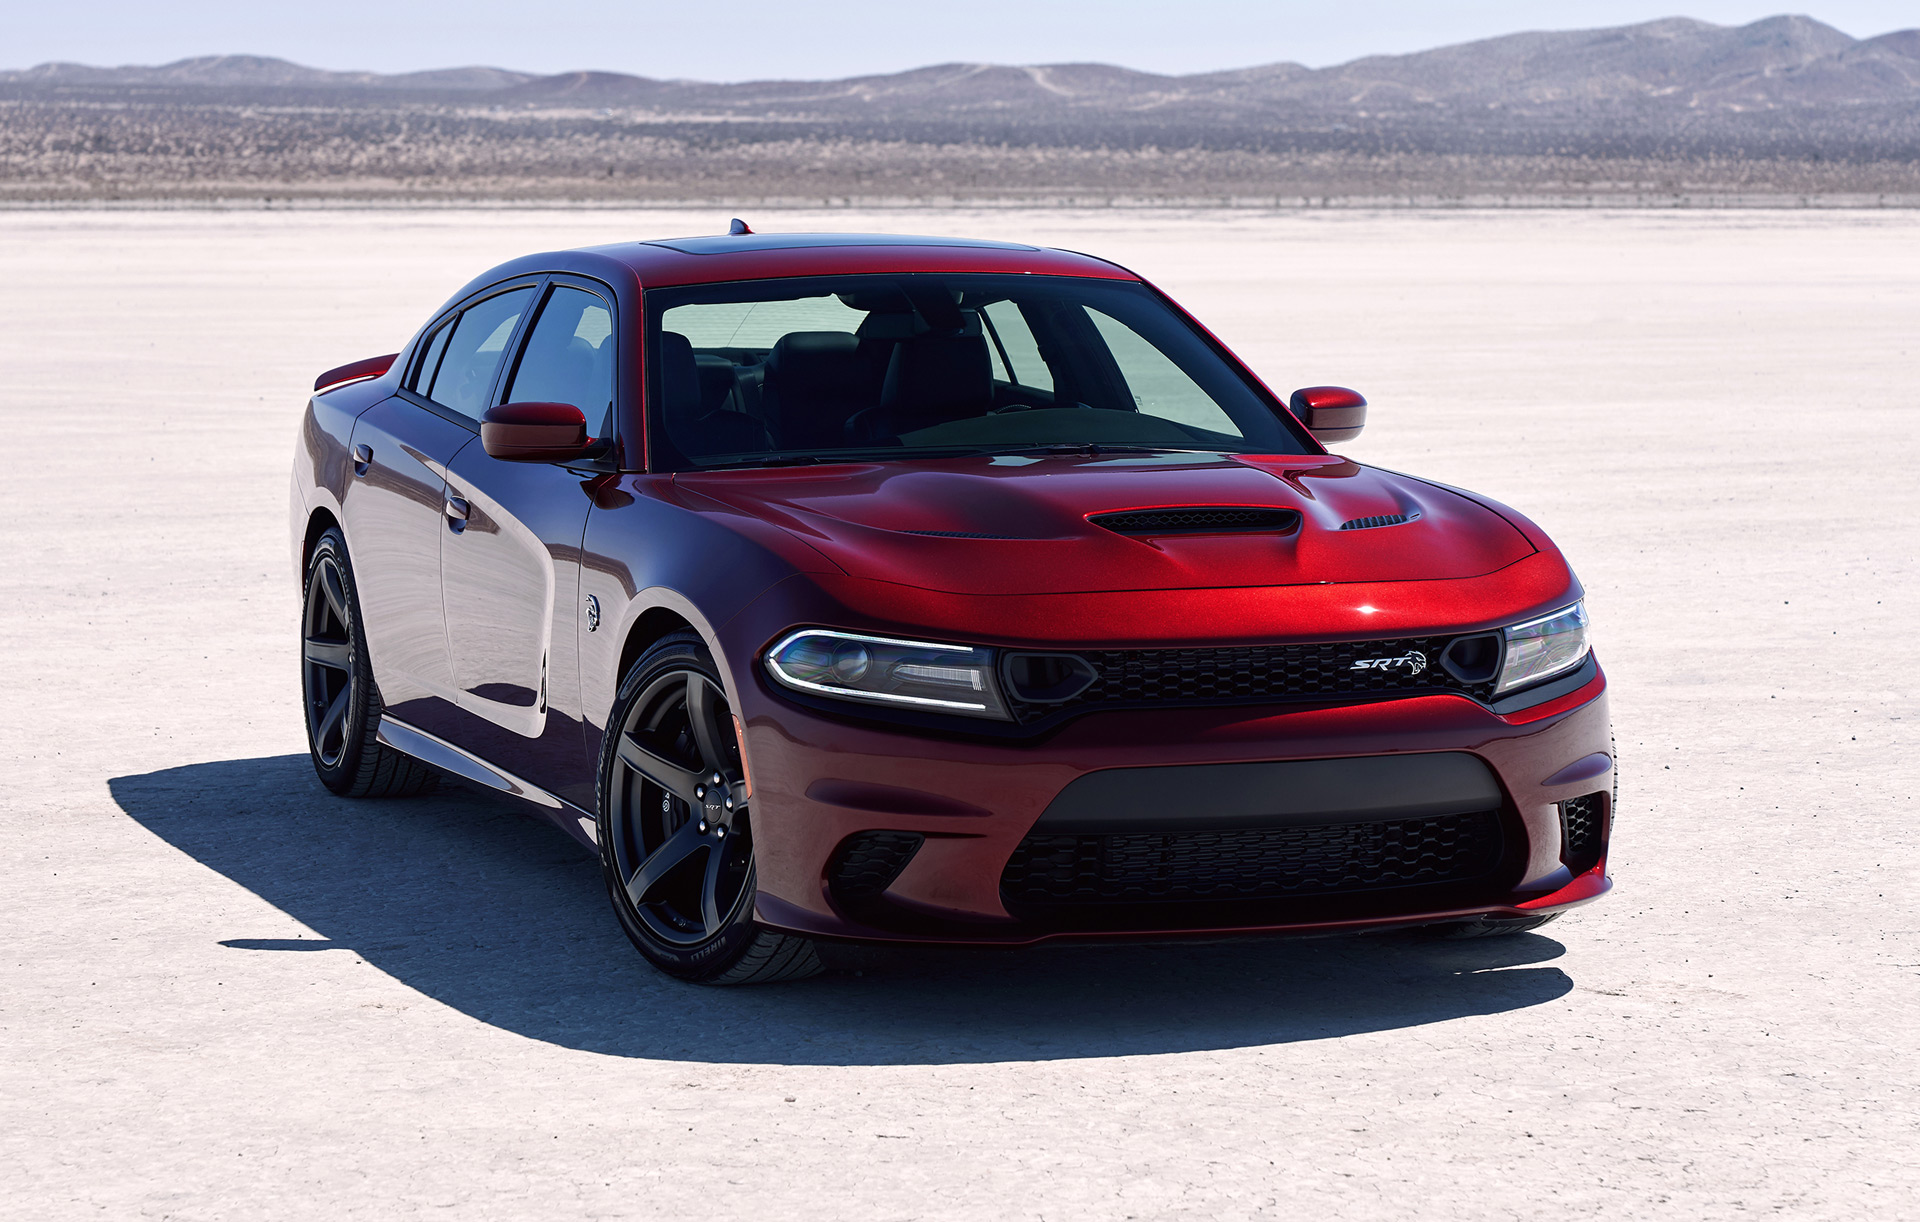 66 Best 2019 Dodge Charger Srt8 Hellcat Concept